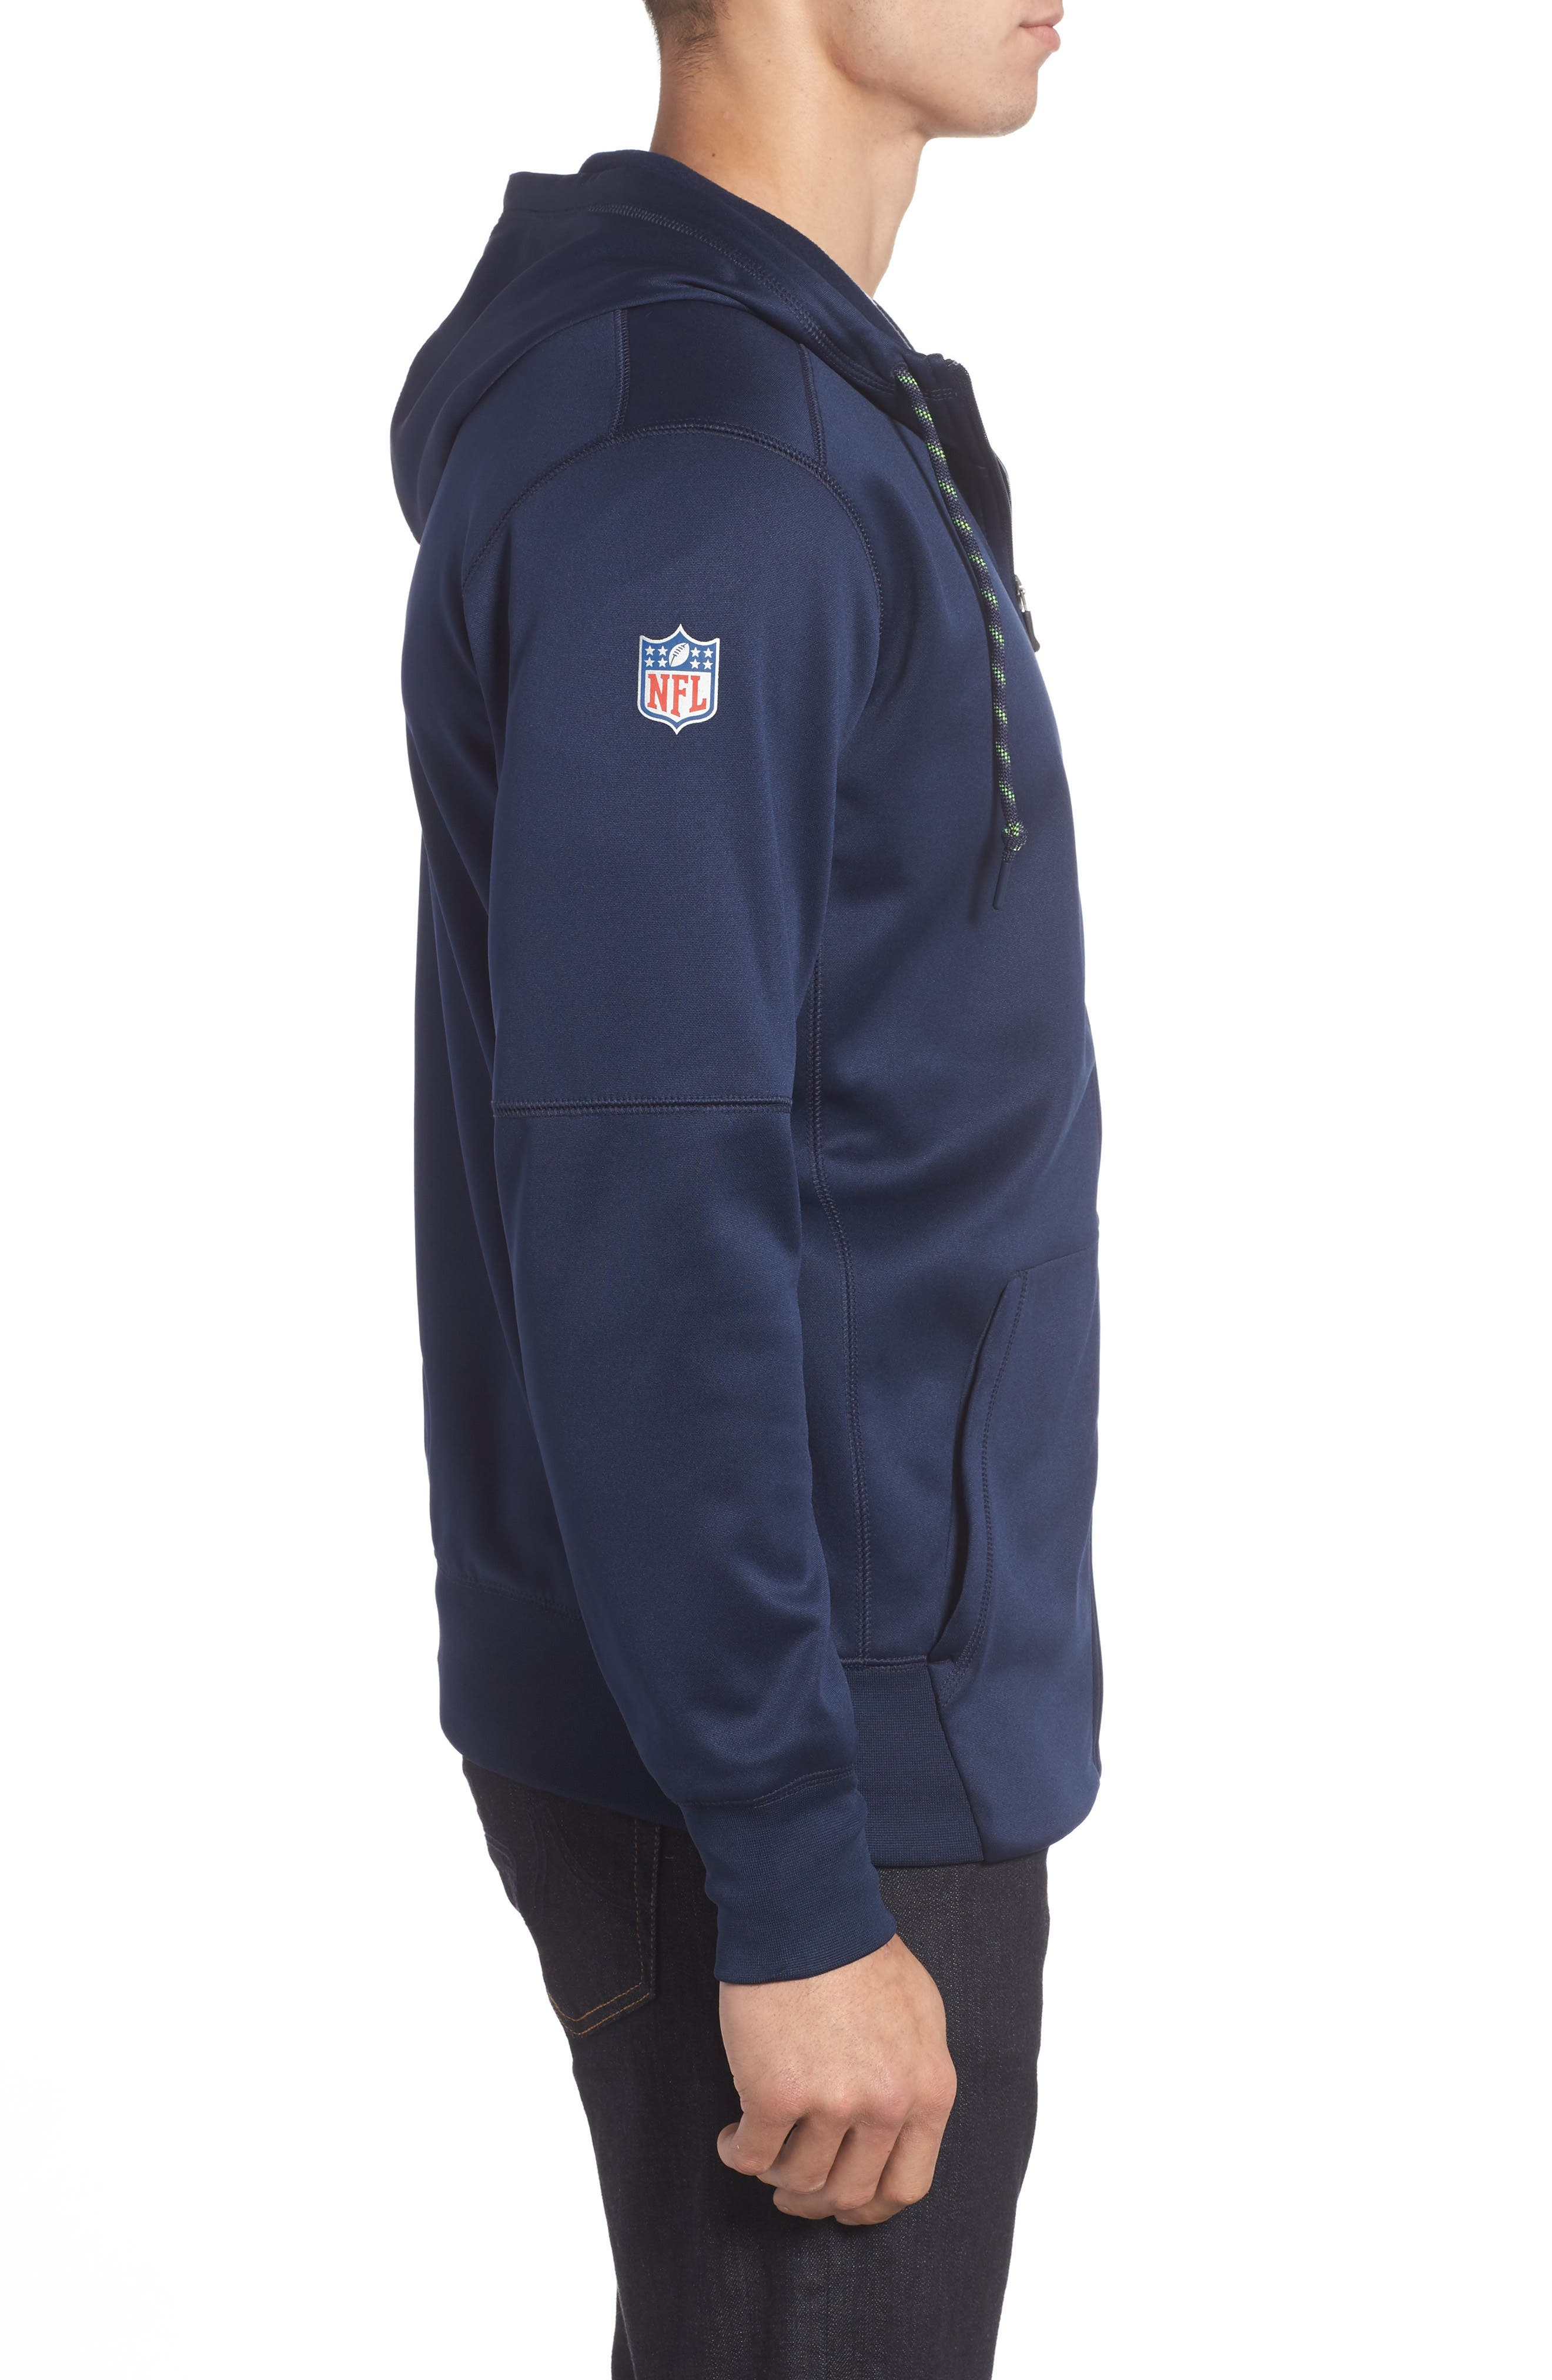 Therma-FIT NFL Graphic Zip Hoodie,                             Alternate thumbnail 3, color,                             Seahawks